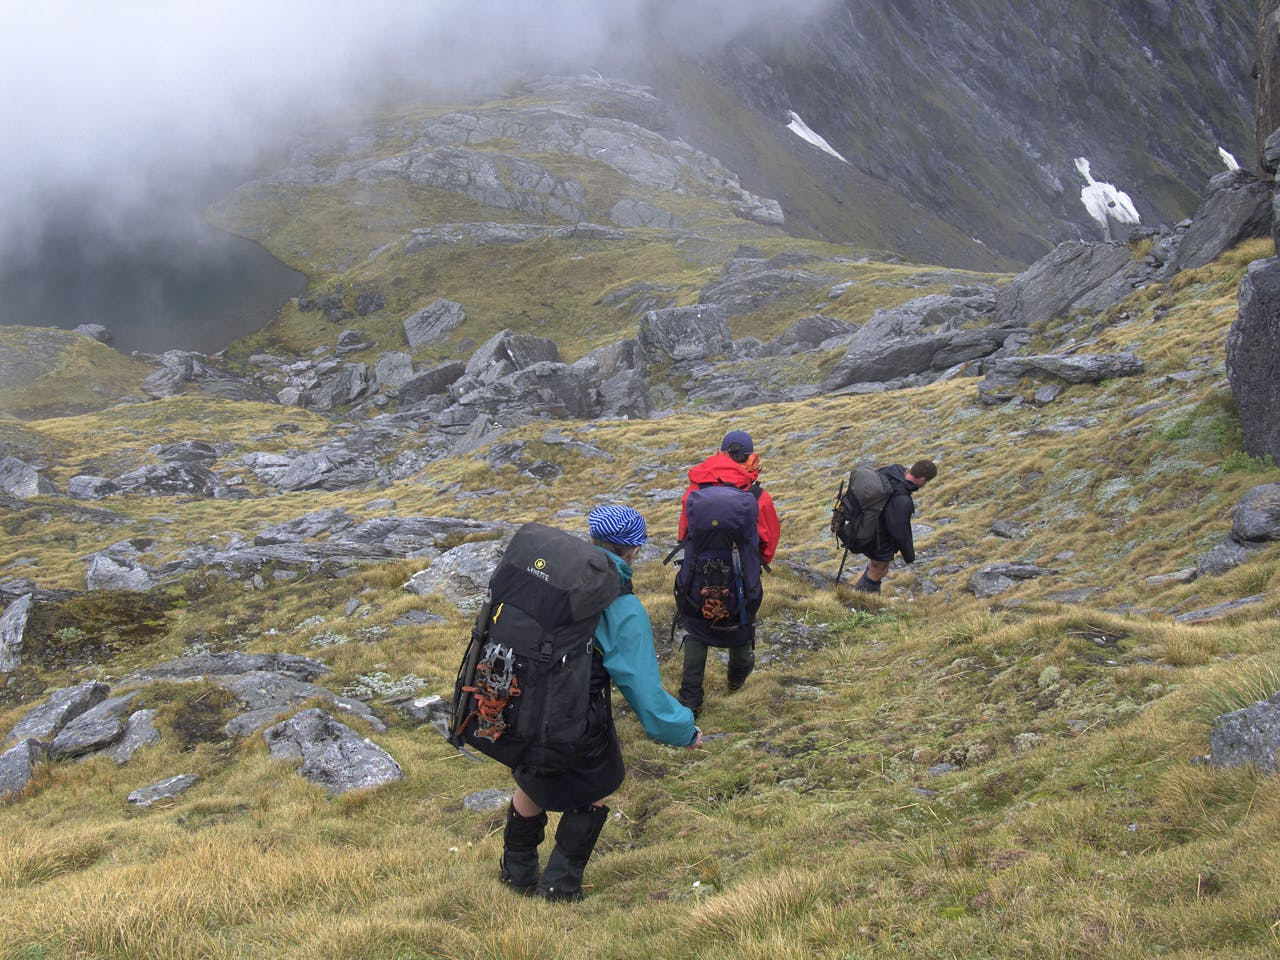 Descending to a saddle on the Thomas Range between 1717m and Mount Stevenson. Photo: Geoff Spearpoint